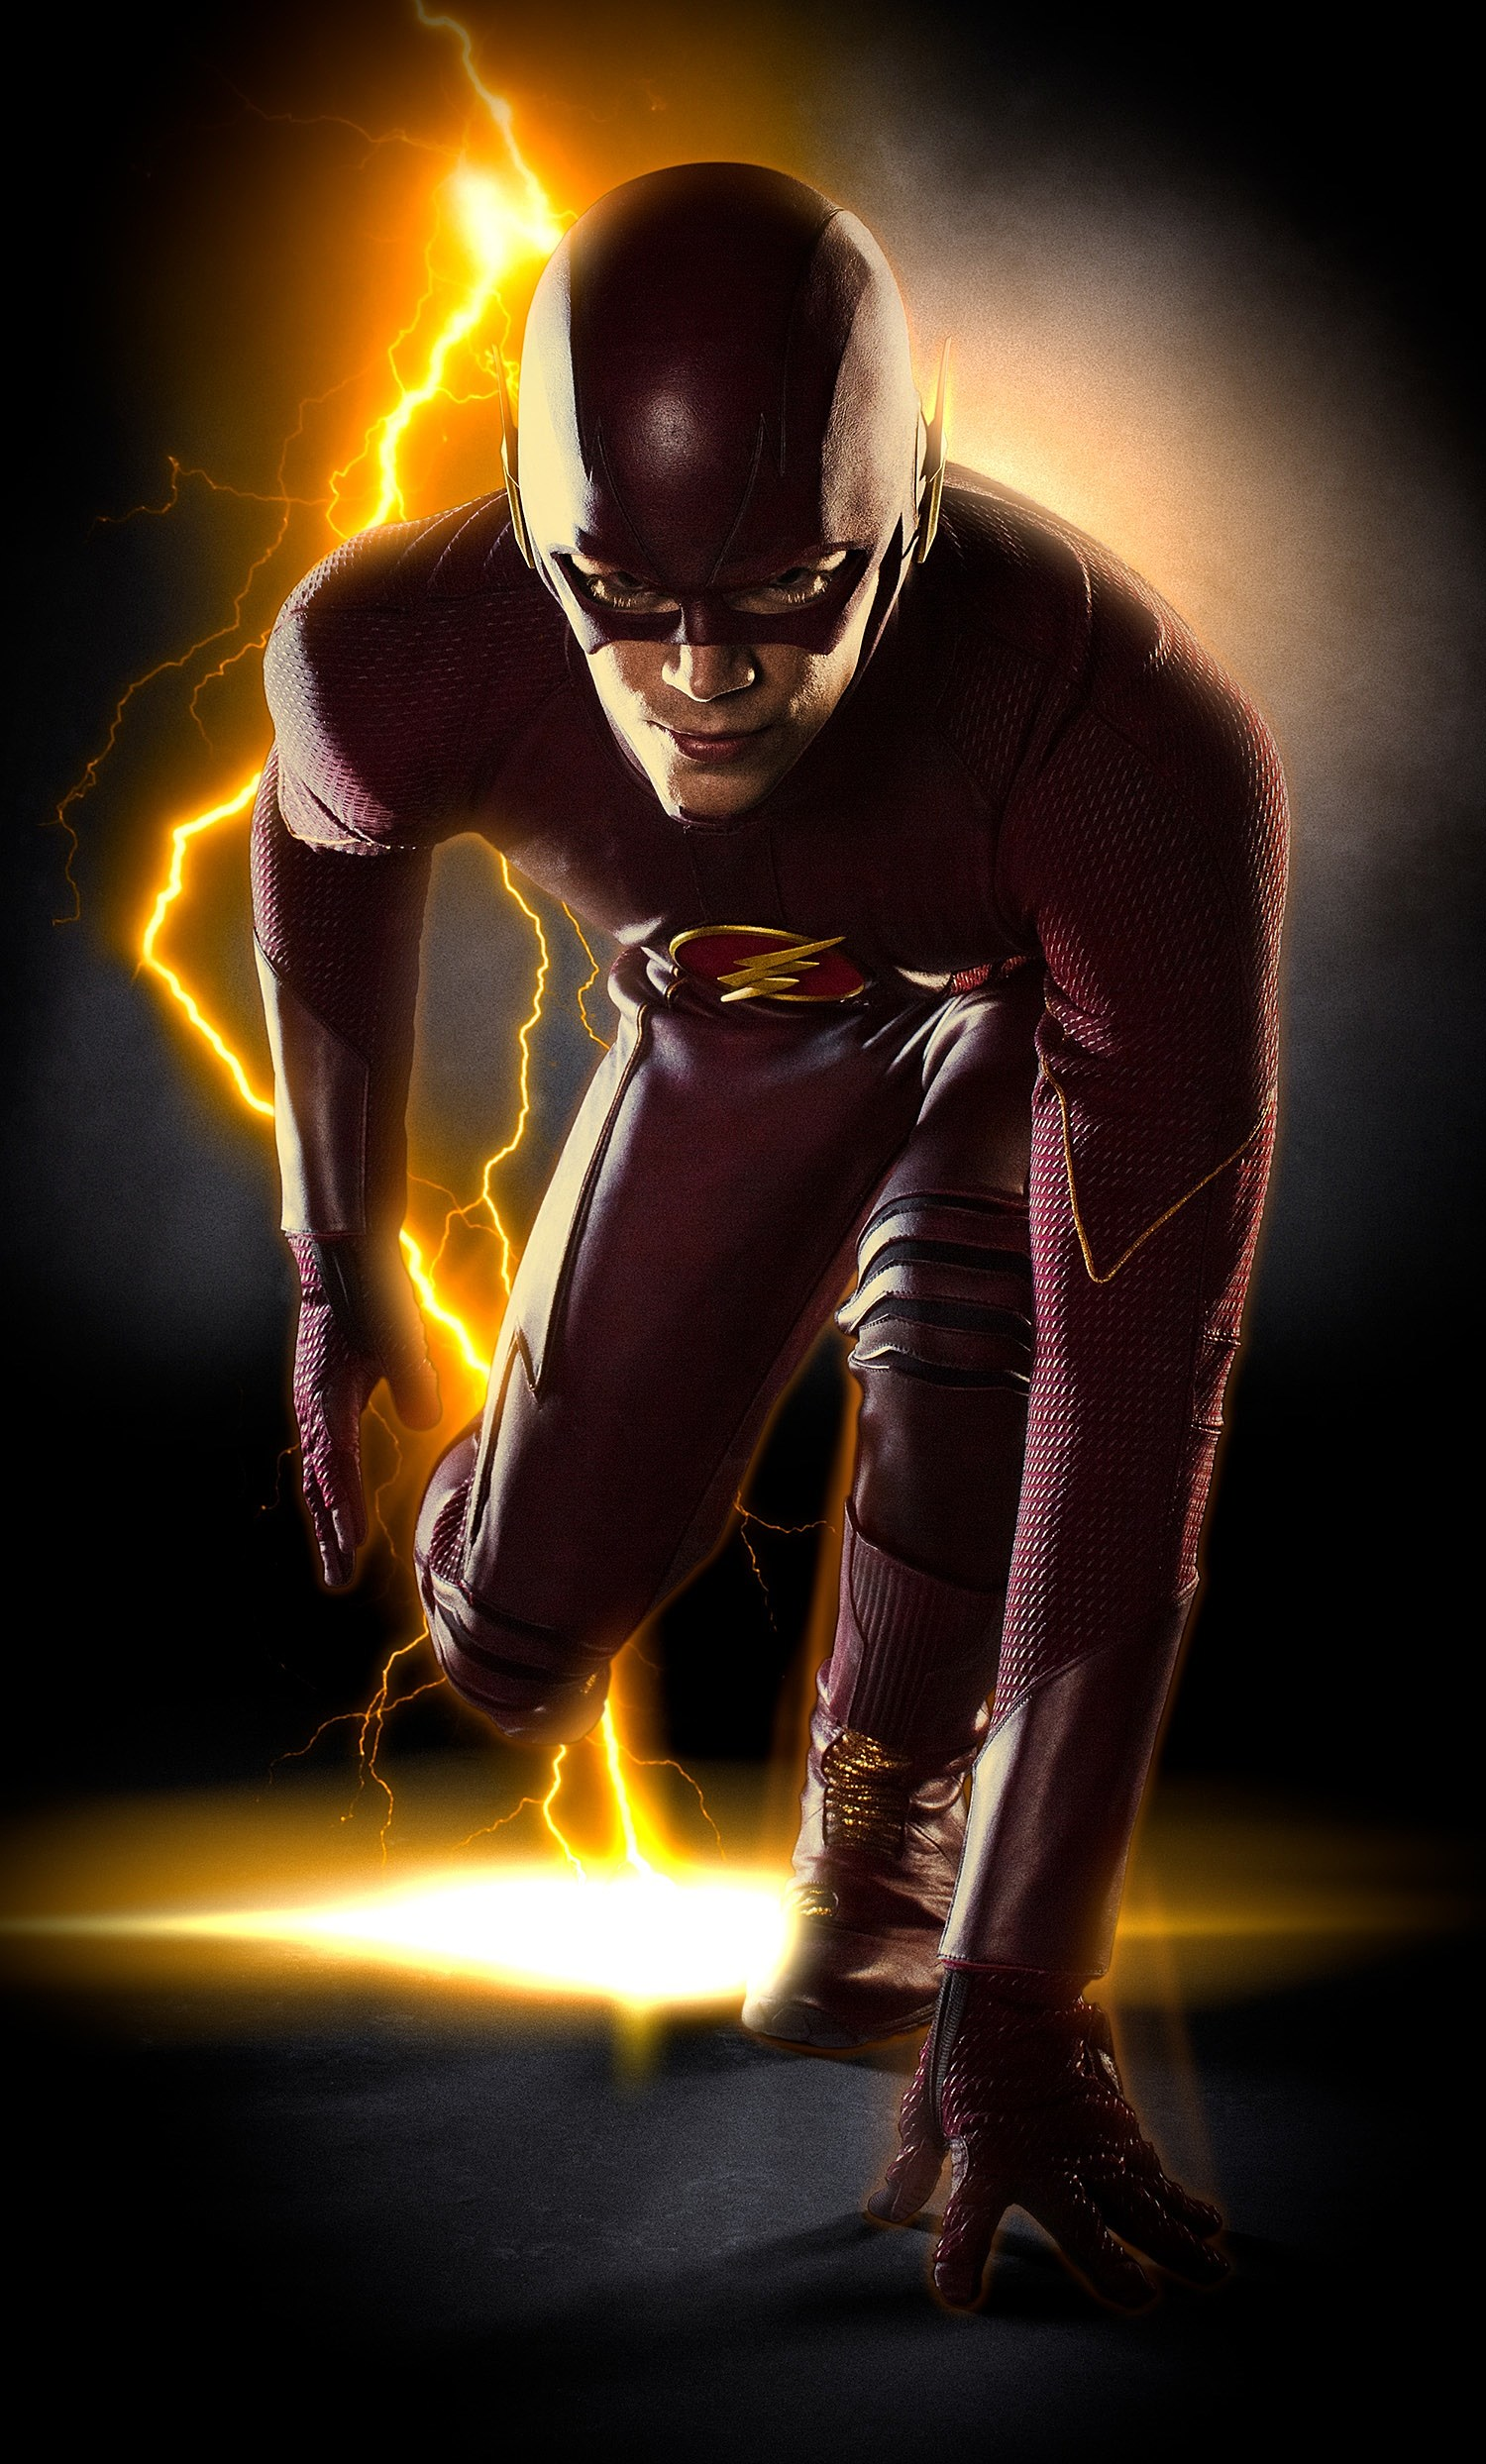 THE FLASH Full Suit Image